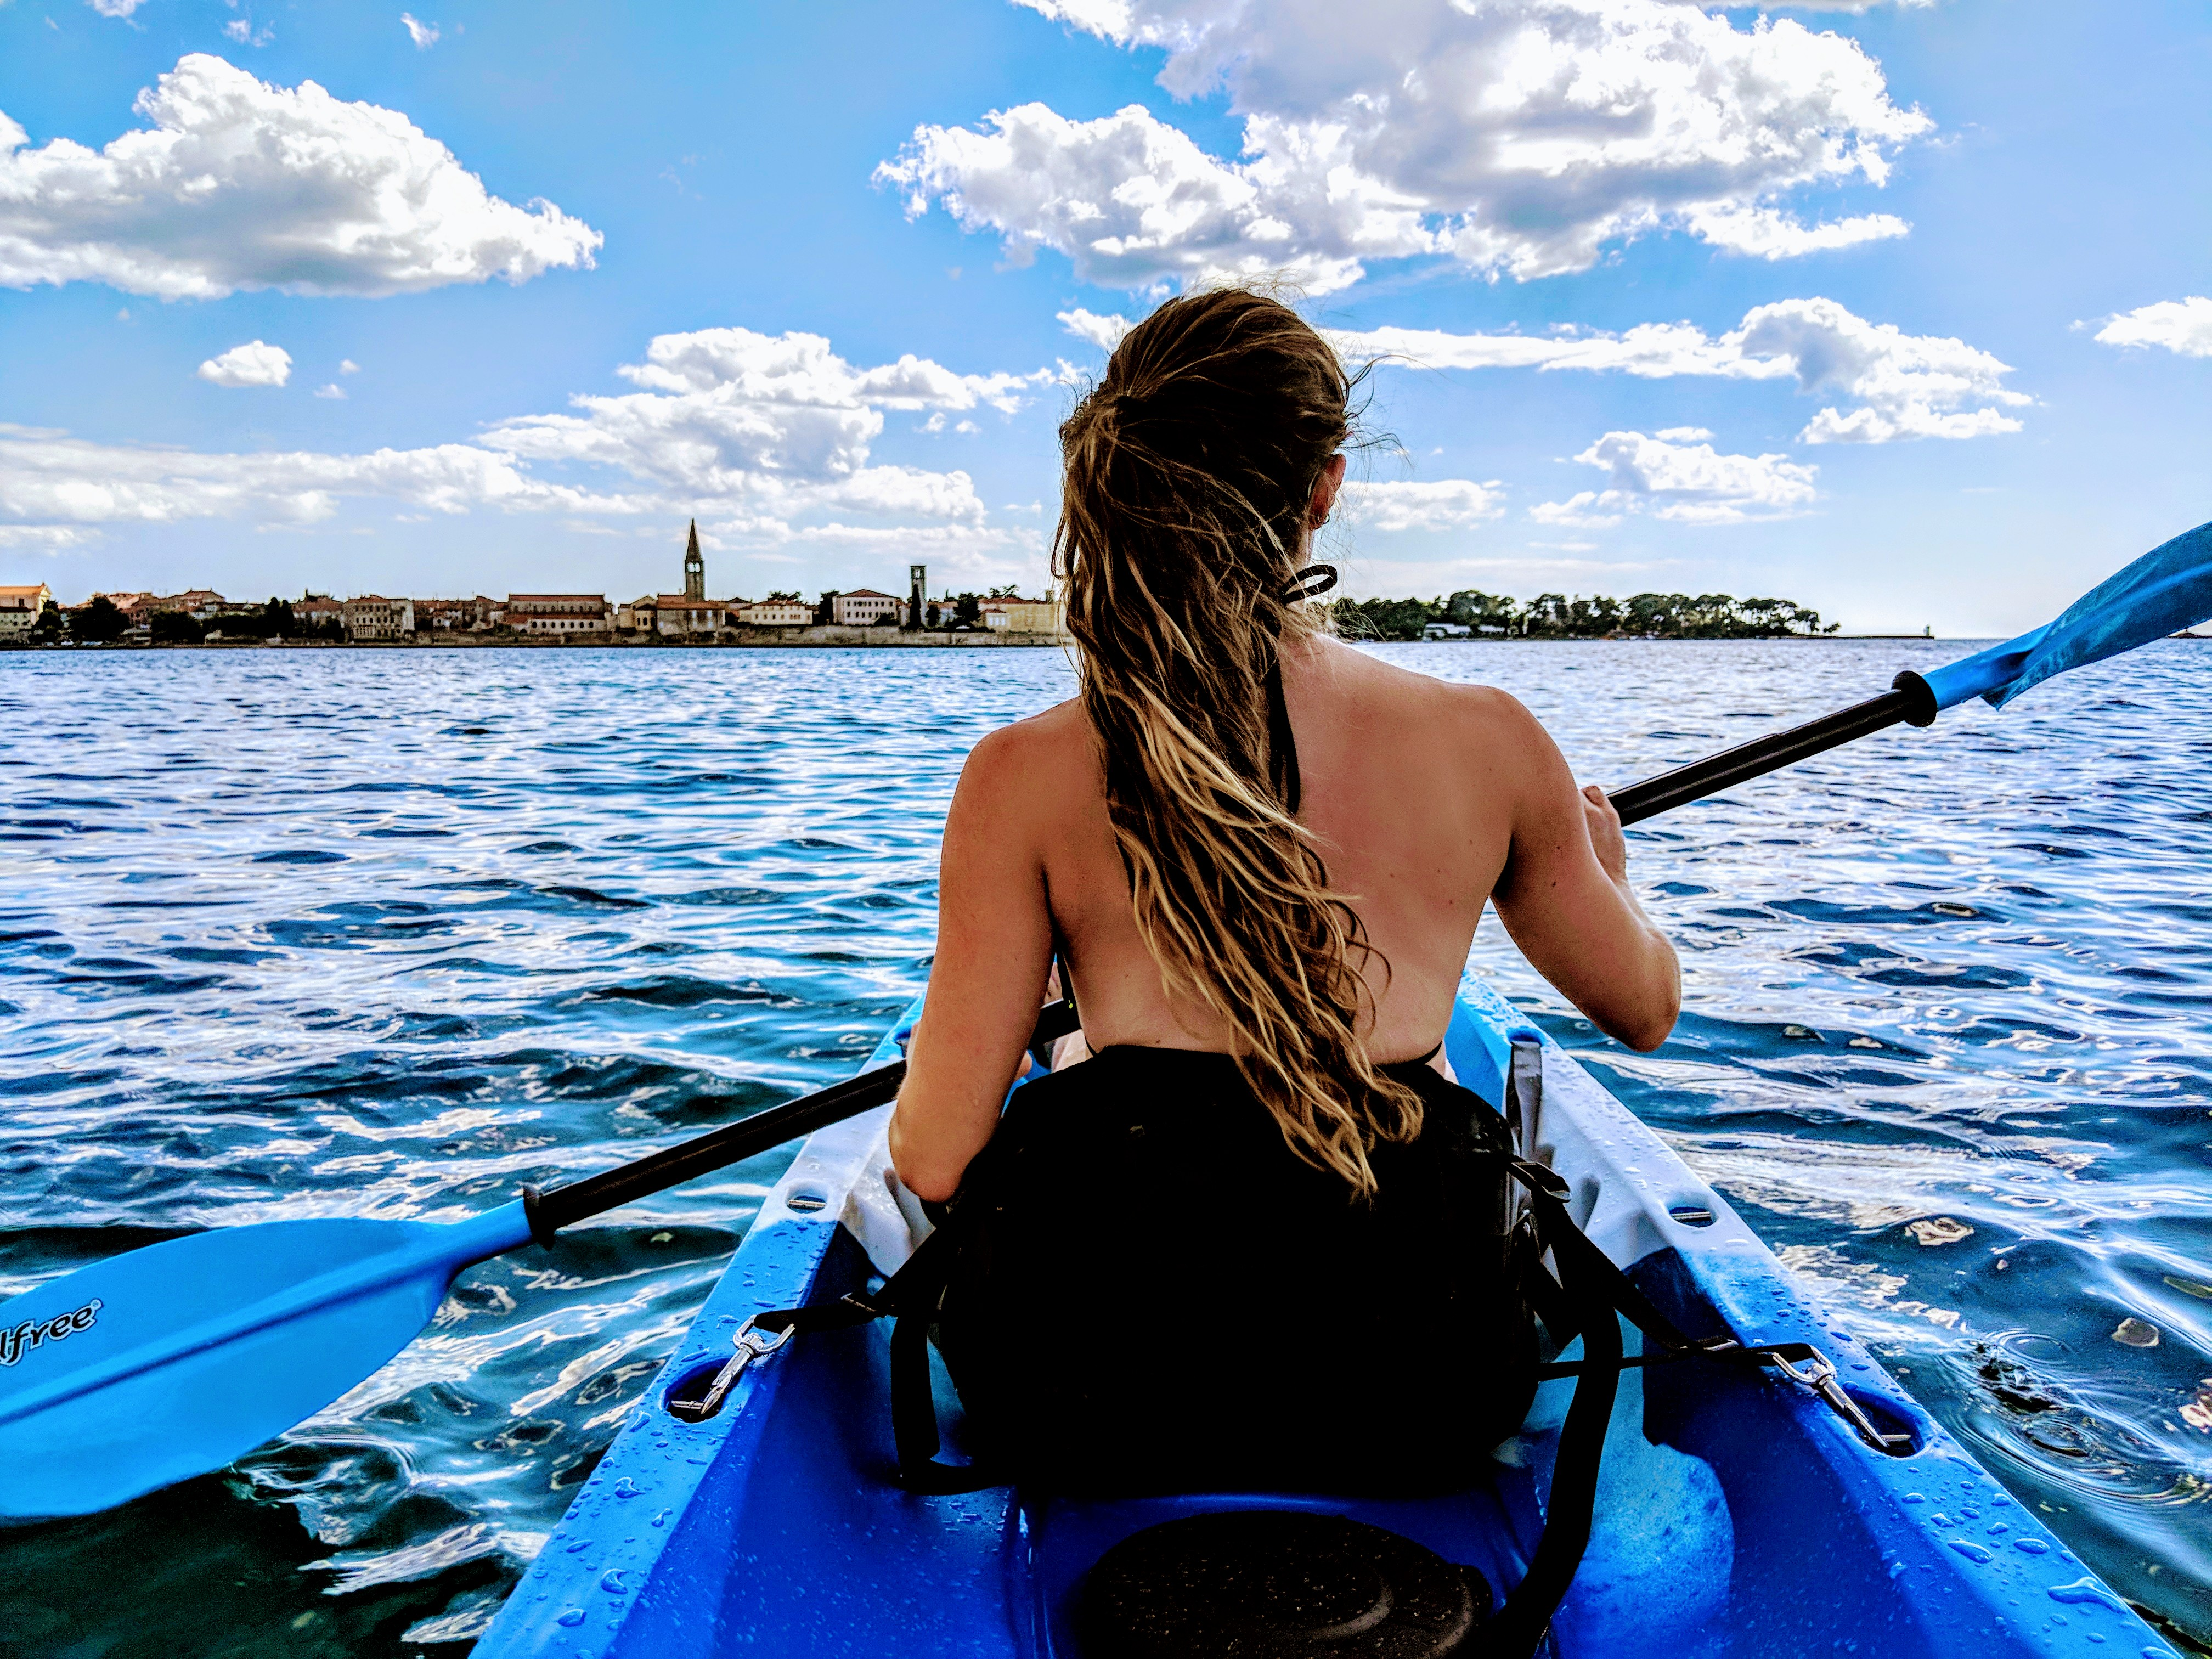 Sea Kayaking Porec Islands